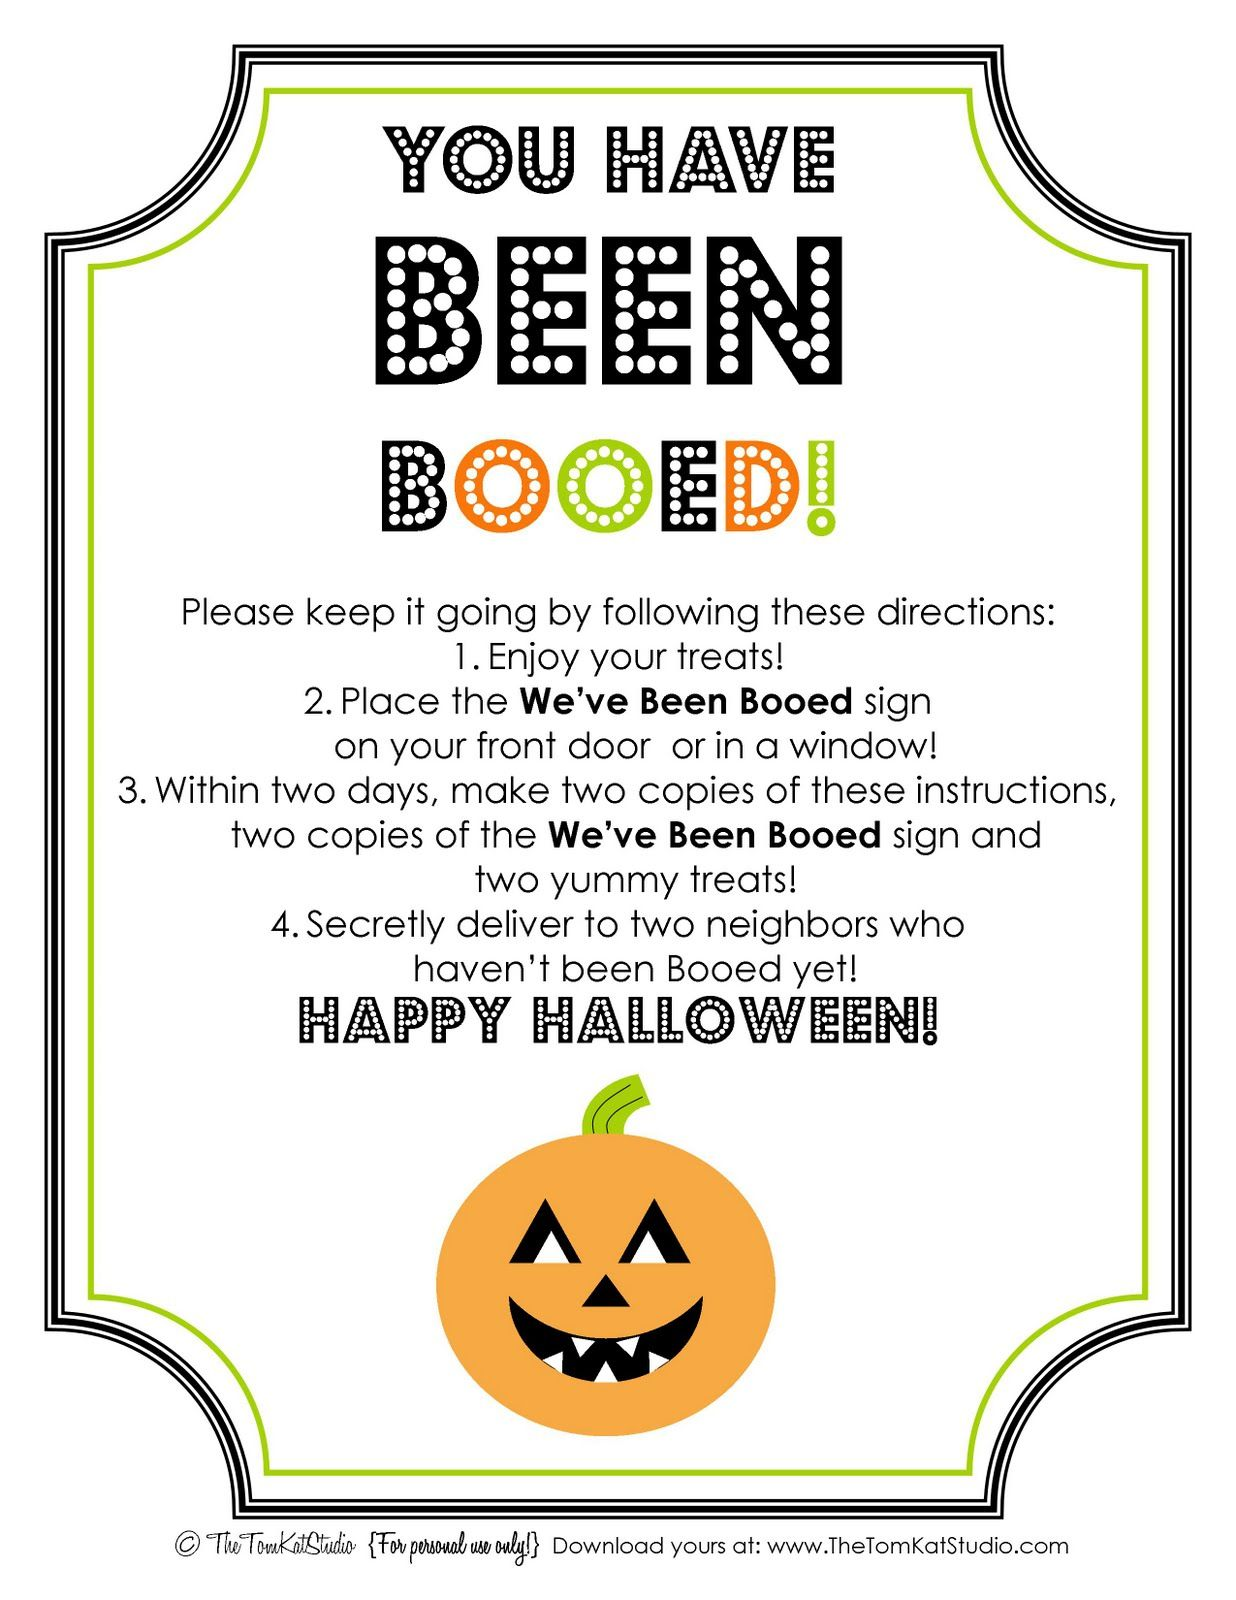 photo regarding We Ve Been Booed Printable named Halloween Free of charge Printable BOO Signal Directions Vacations